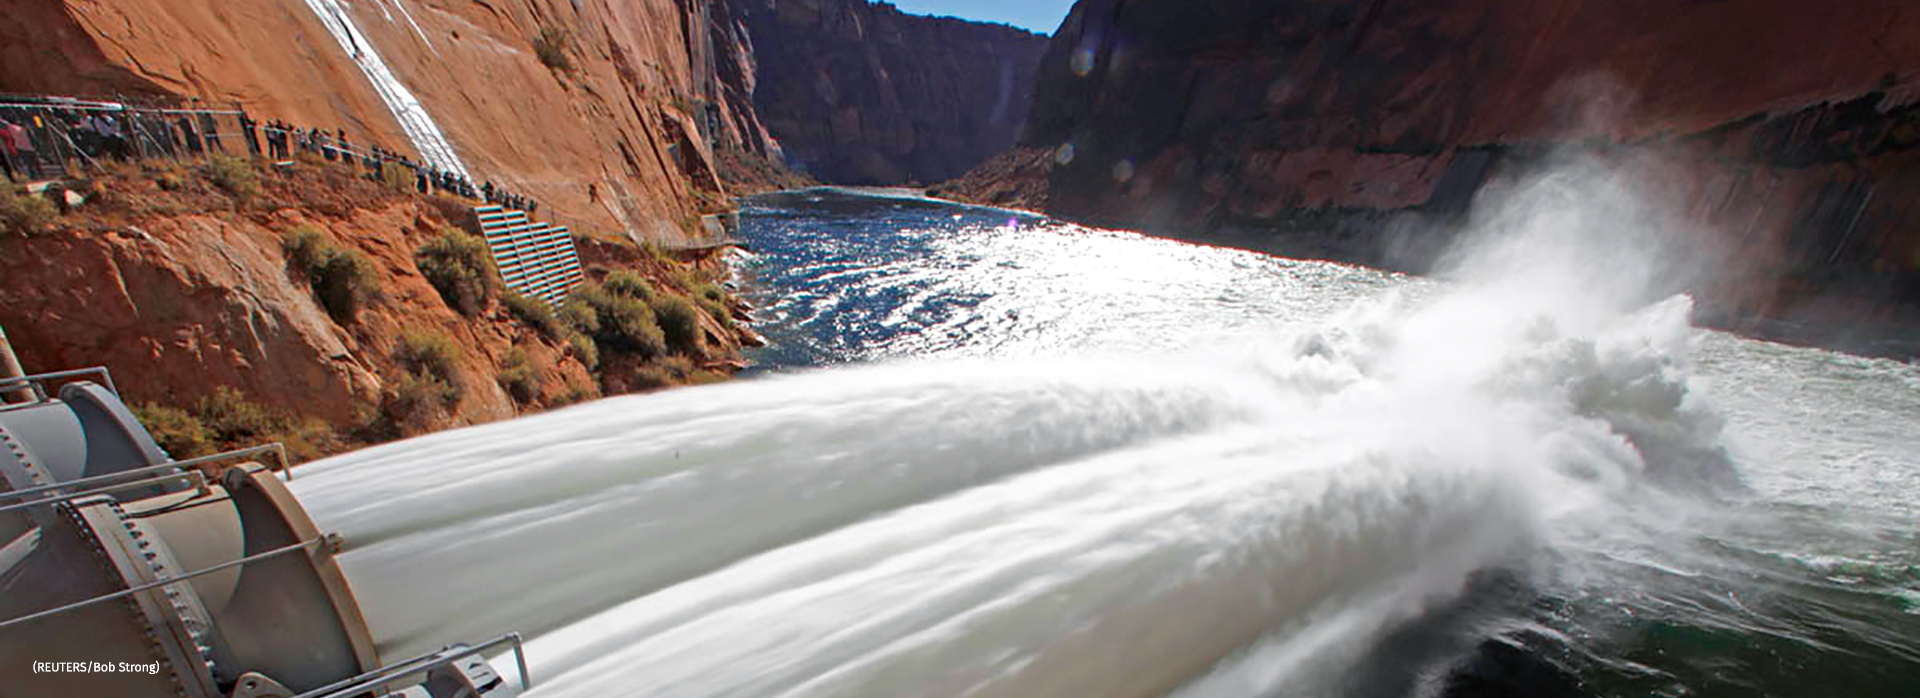 River outlet tubes during a high flow release from the Glen Canyon Dam